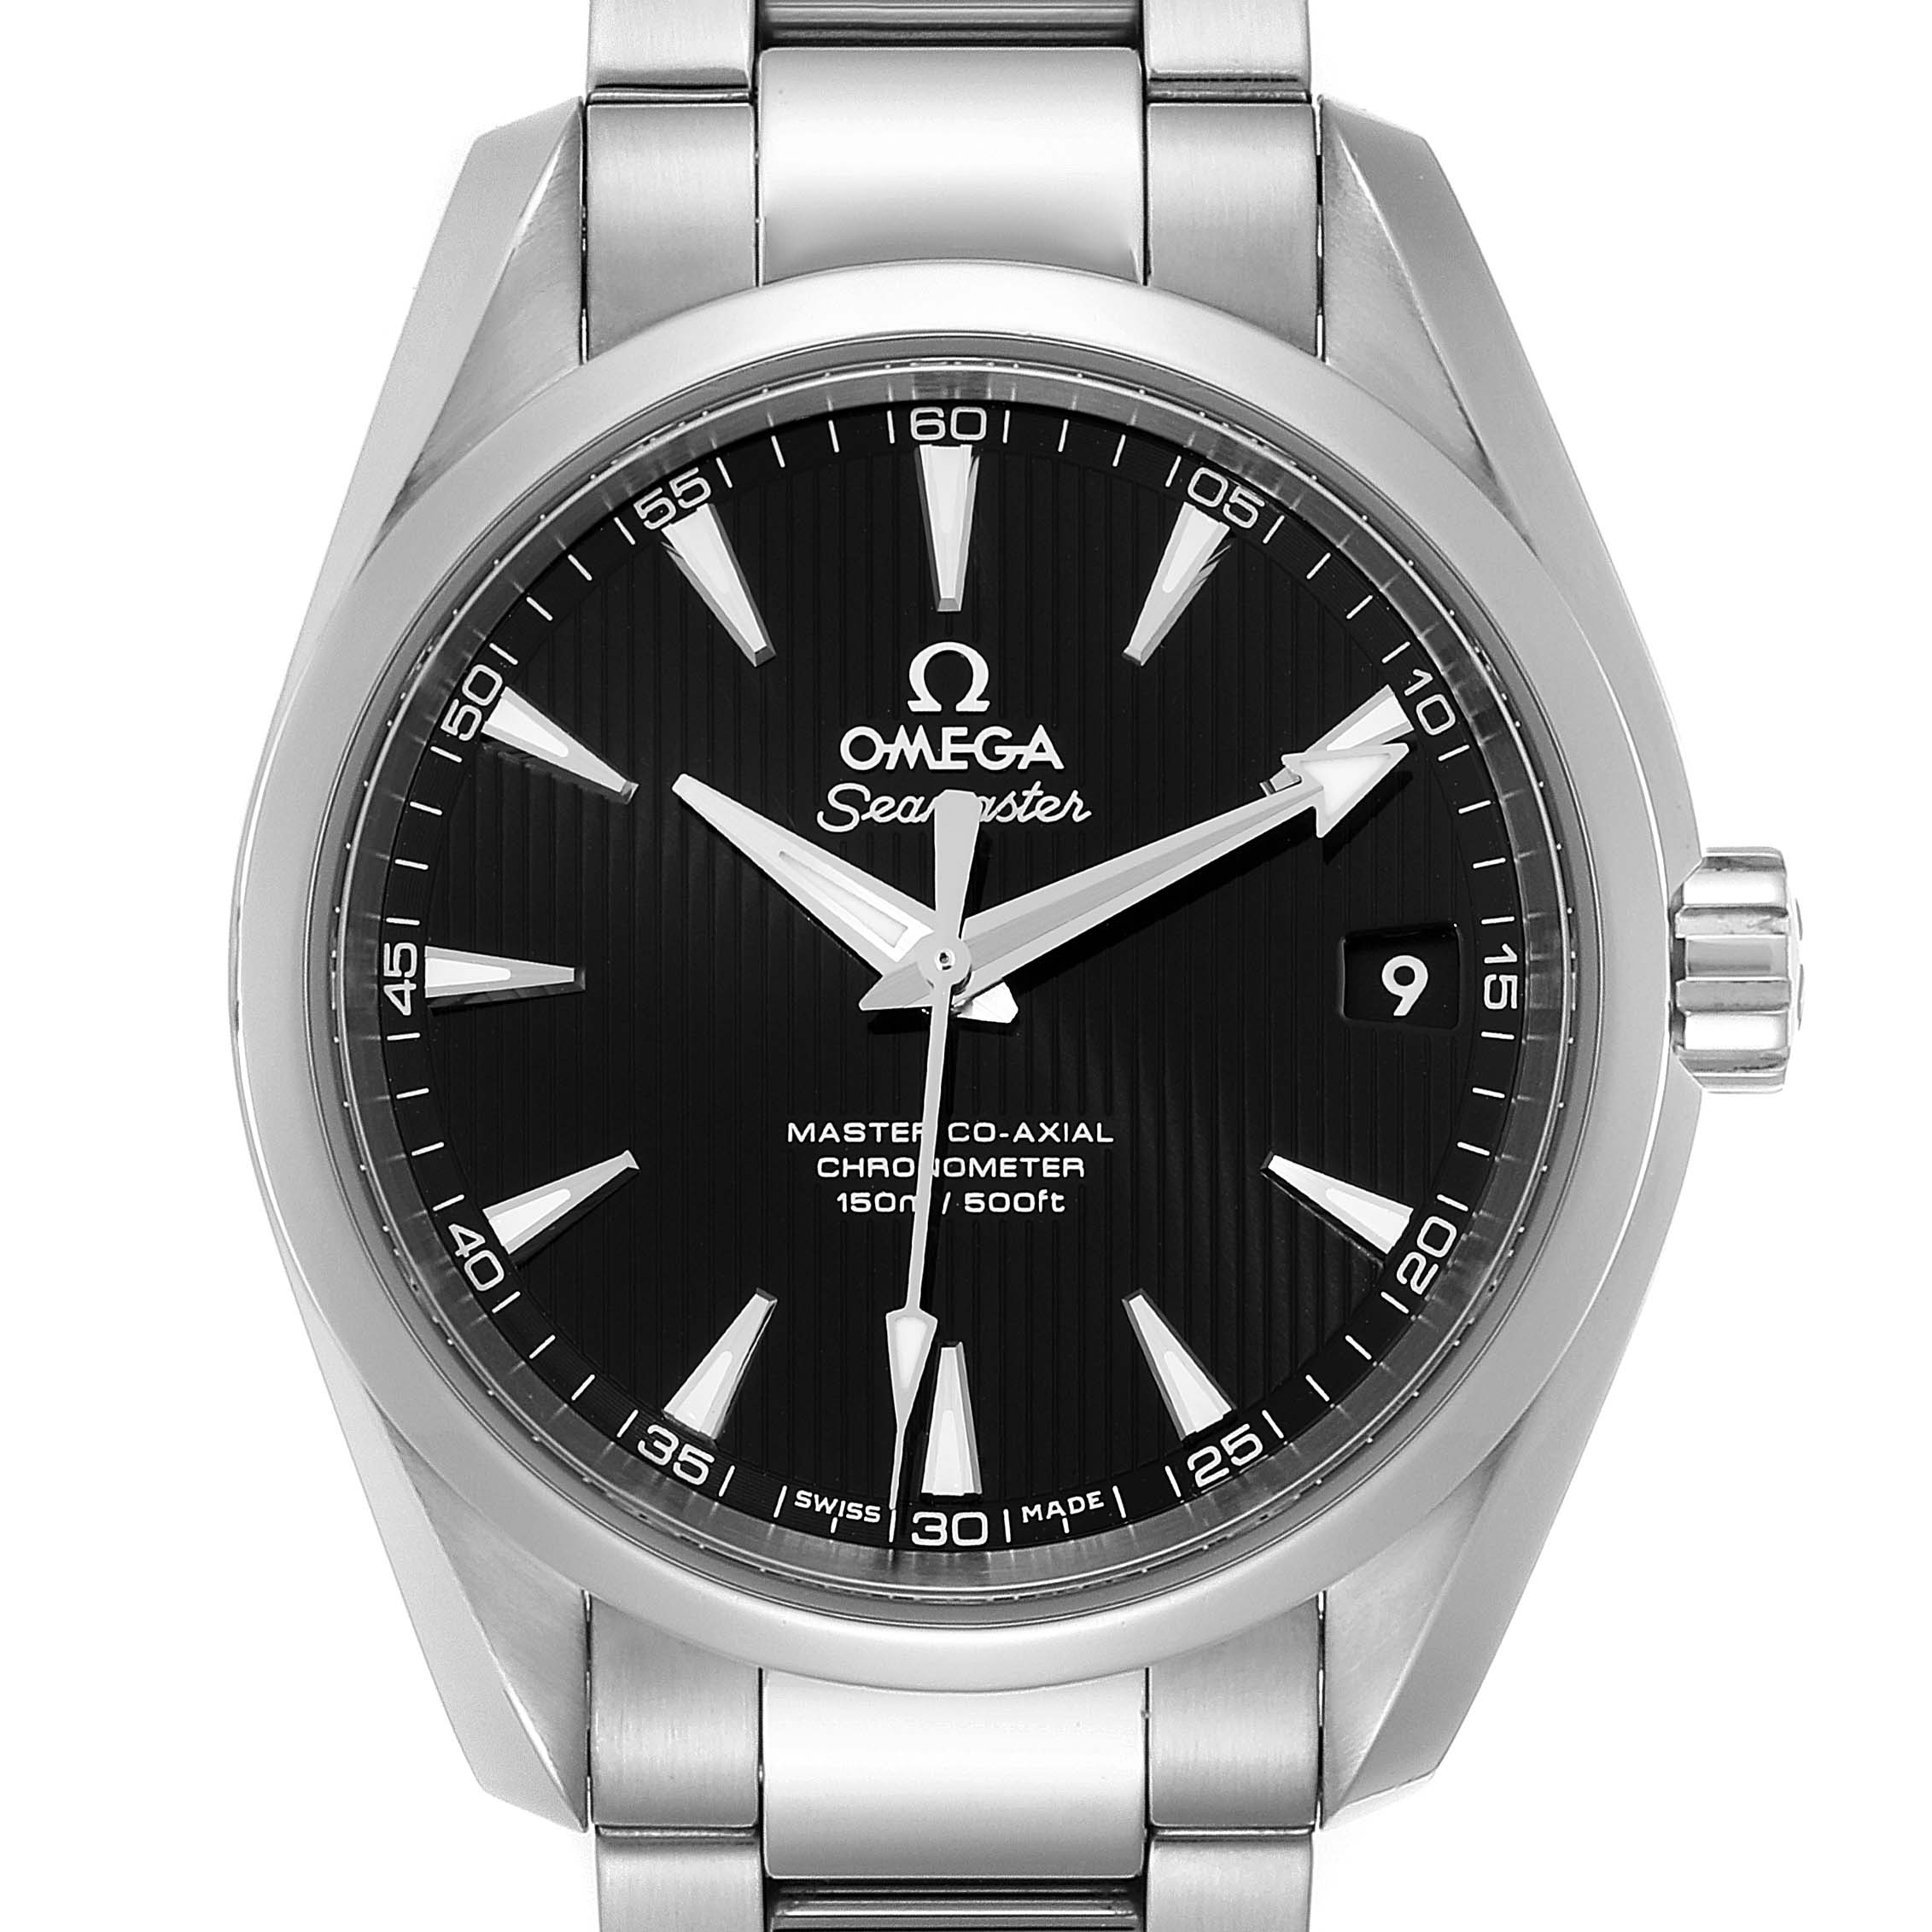 Photo of Omega Seamaster Aqua Terra Blue Dial Watch 231.10.39.21.01.002 Box Card